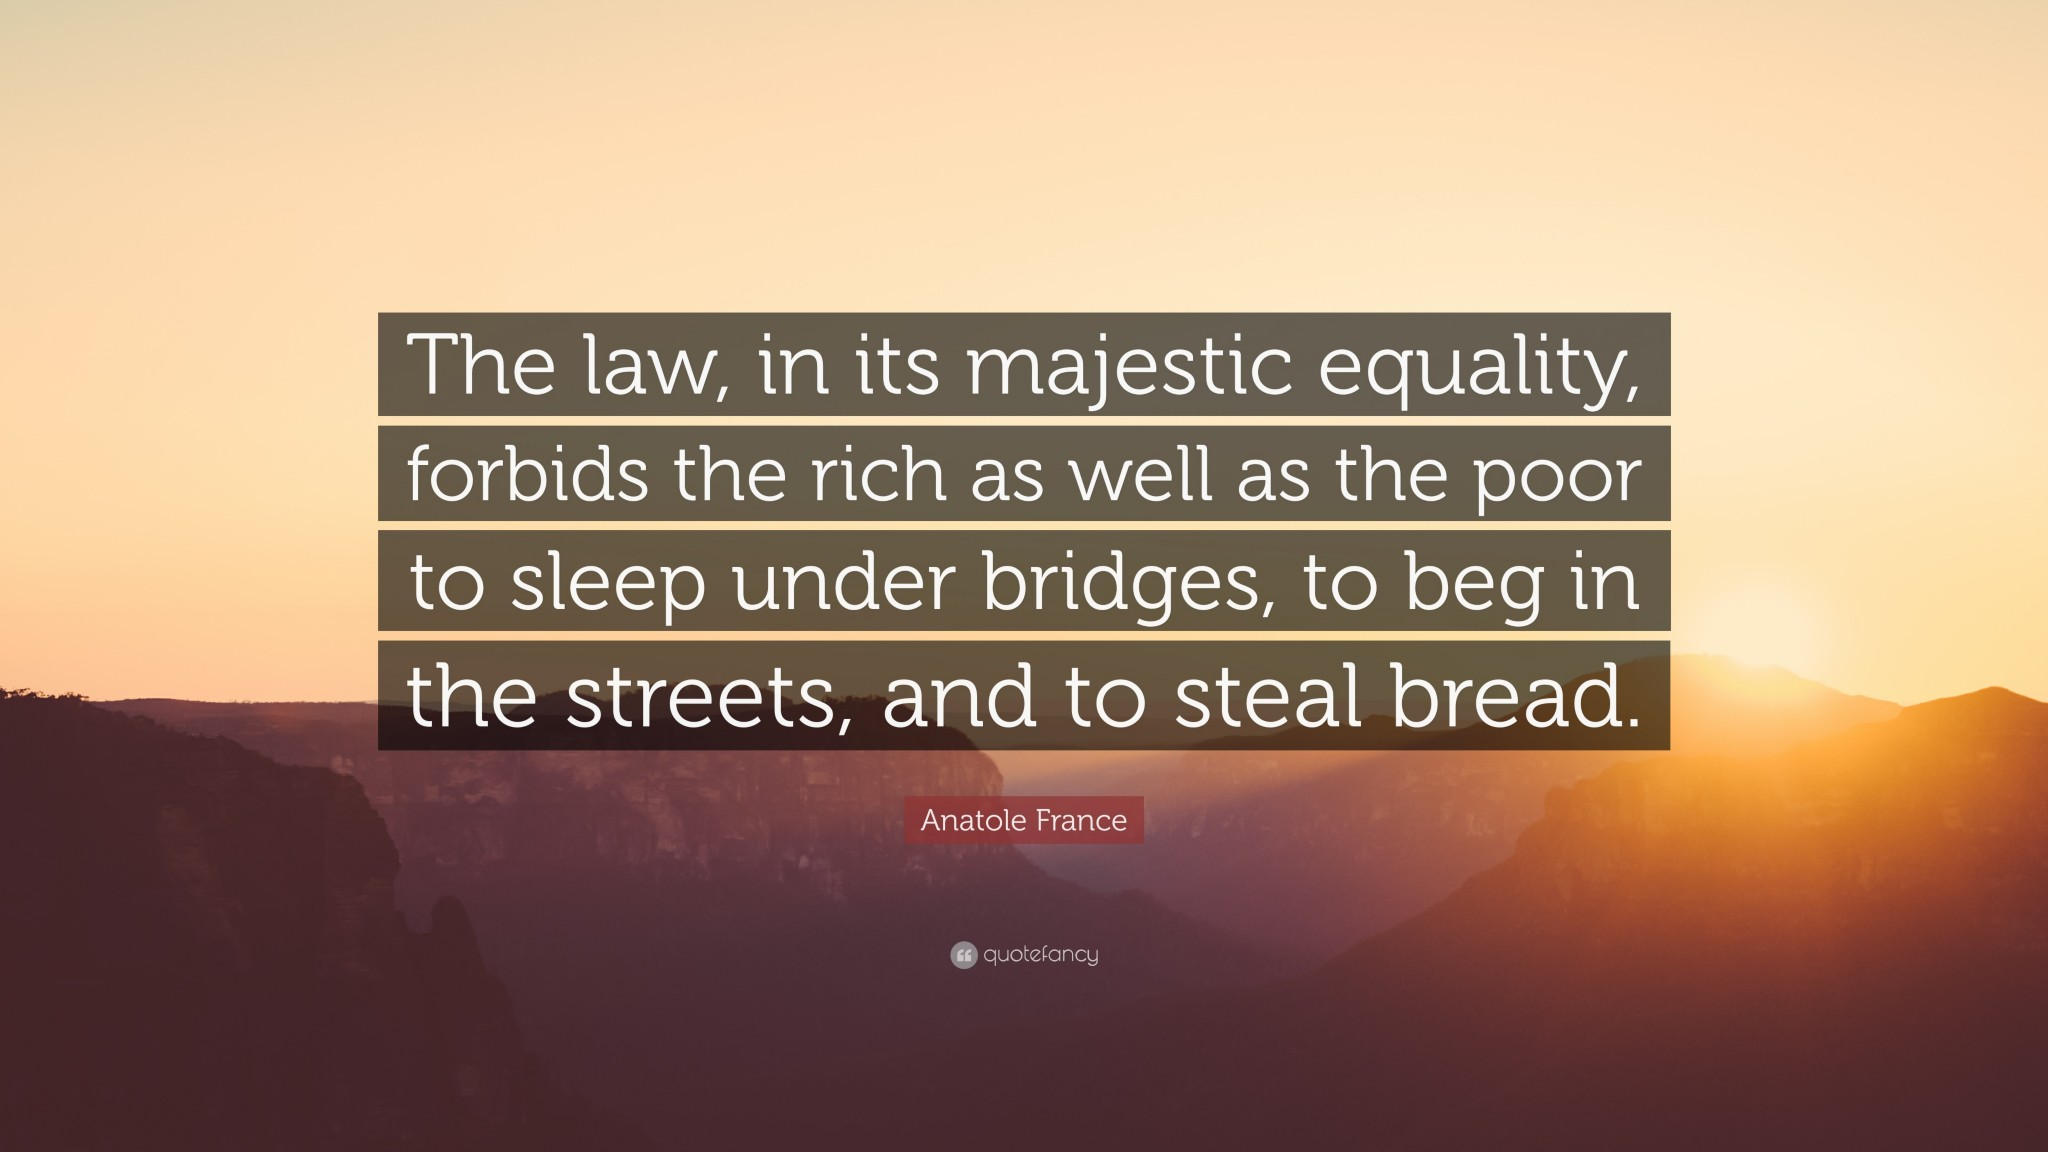 """In its majestic equality, the law forbids rich and poor alike to sleep under bridges, beg in the streets and steal loaves of bread."" – Anatole France [2160×3840]"